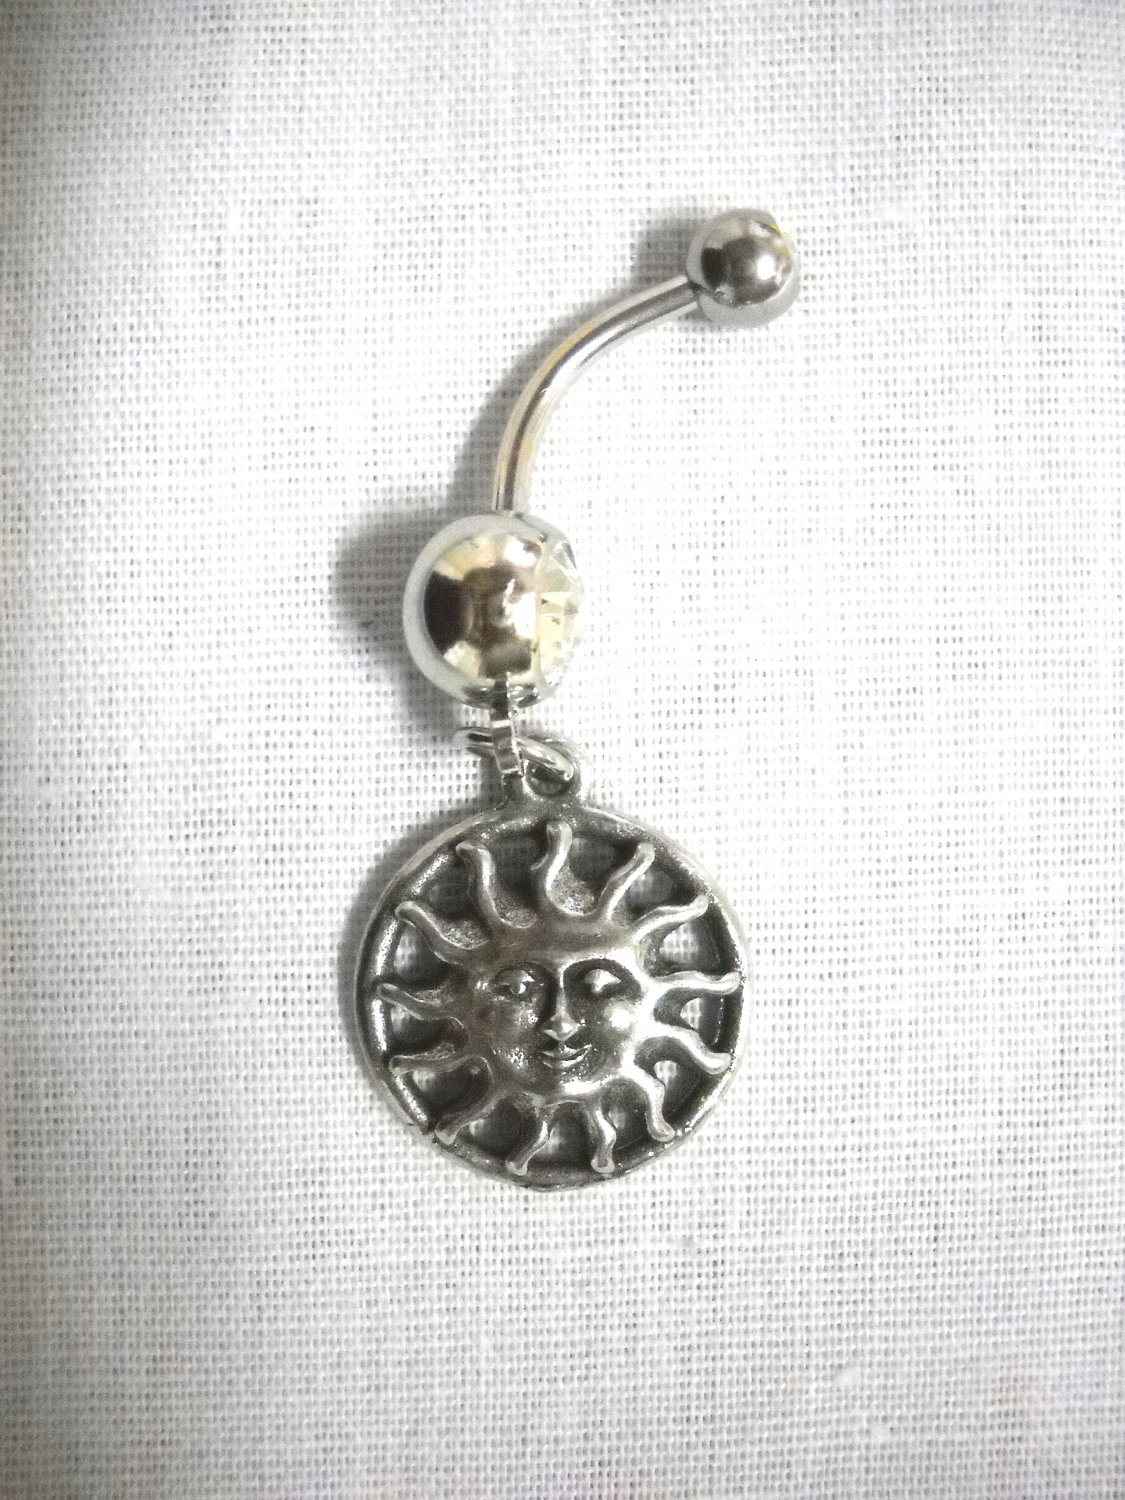 NEW CELESTIAL SUN SOLAR FLARE FLAMES PEWTER CHARM 14g CLEAR CZ BELLY RING